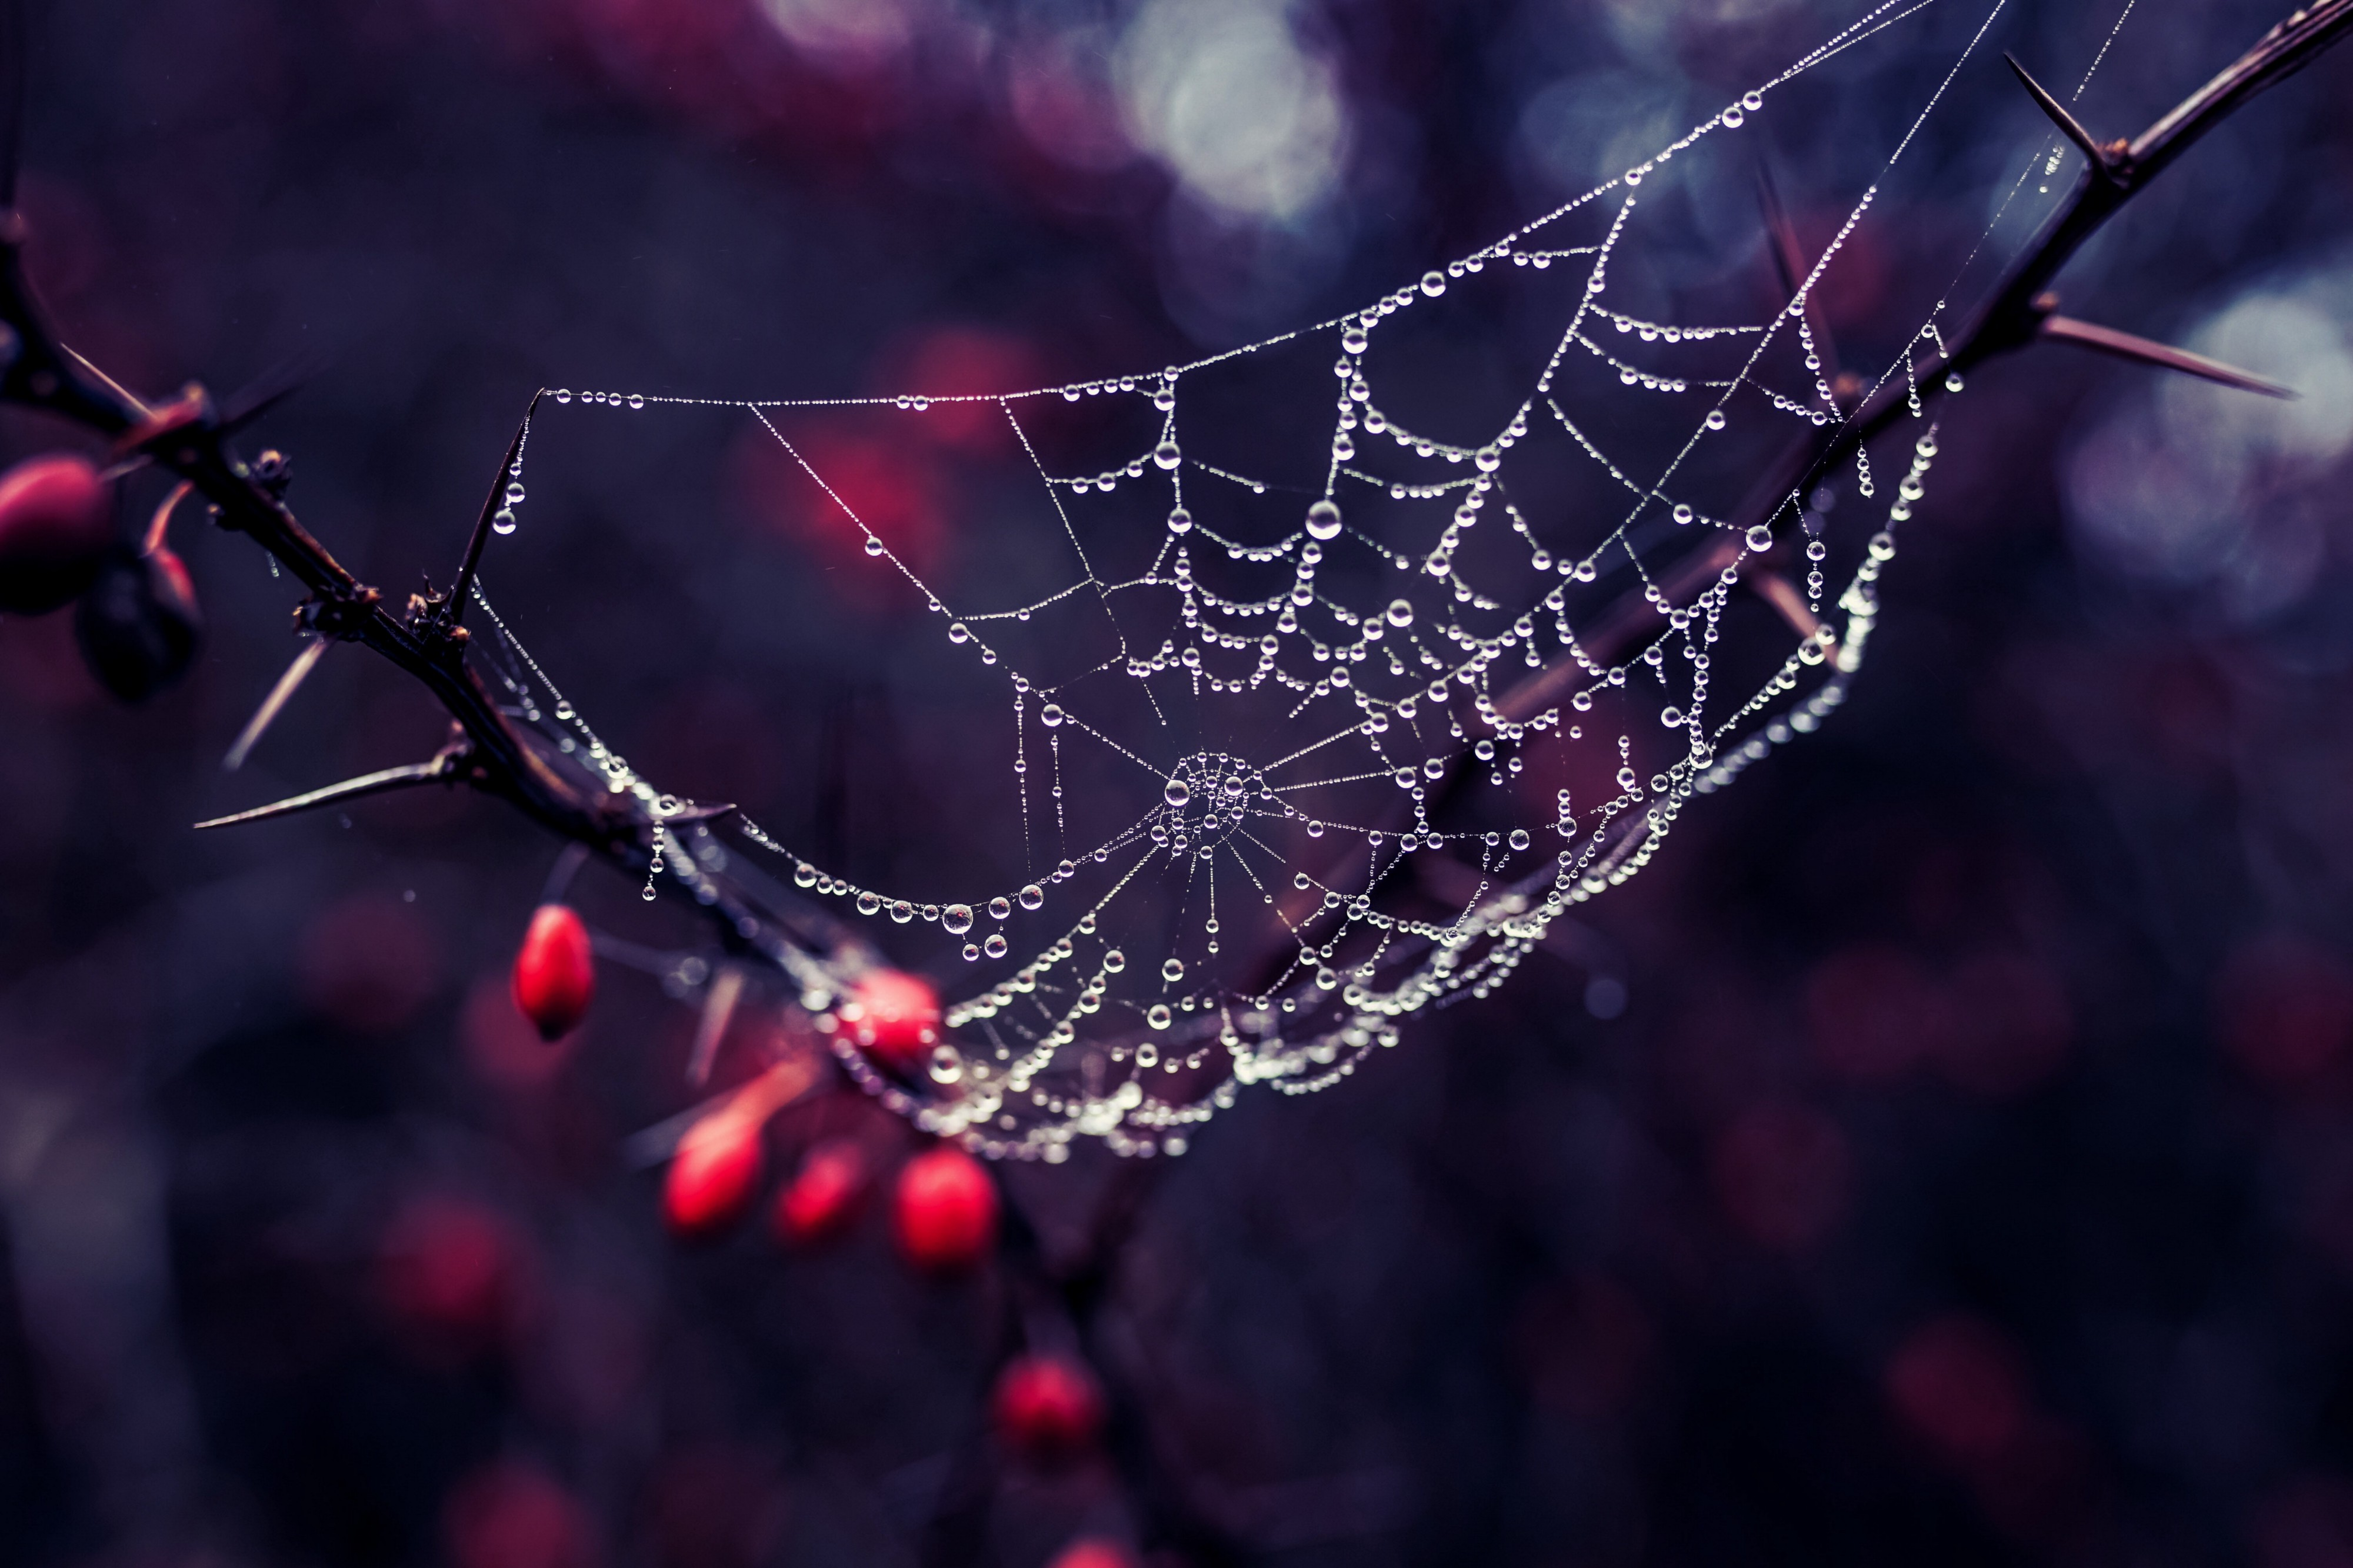 Spiderweb speckled with raindrops with a hazy background of red cherries and blue tinges